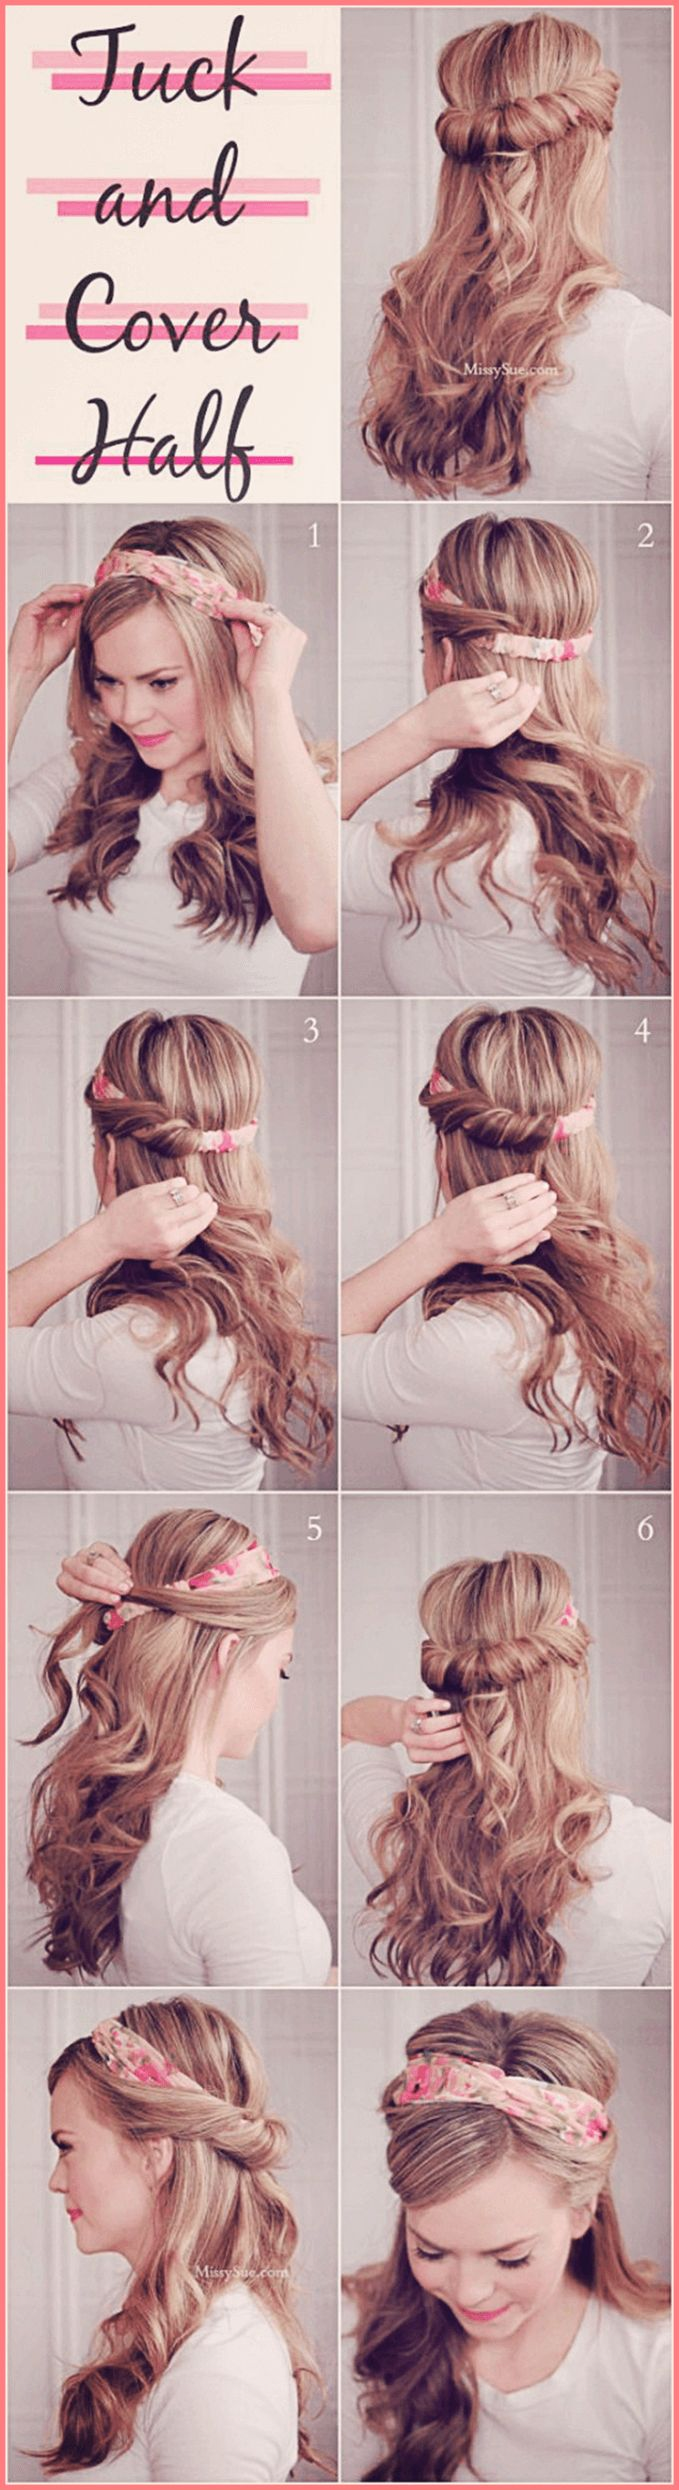 The model shows off how to do the tuck and cover half hairstyle